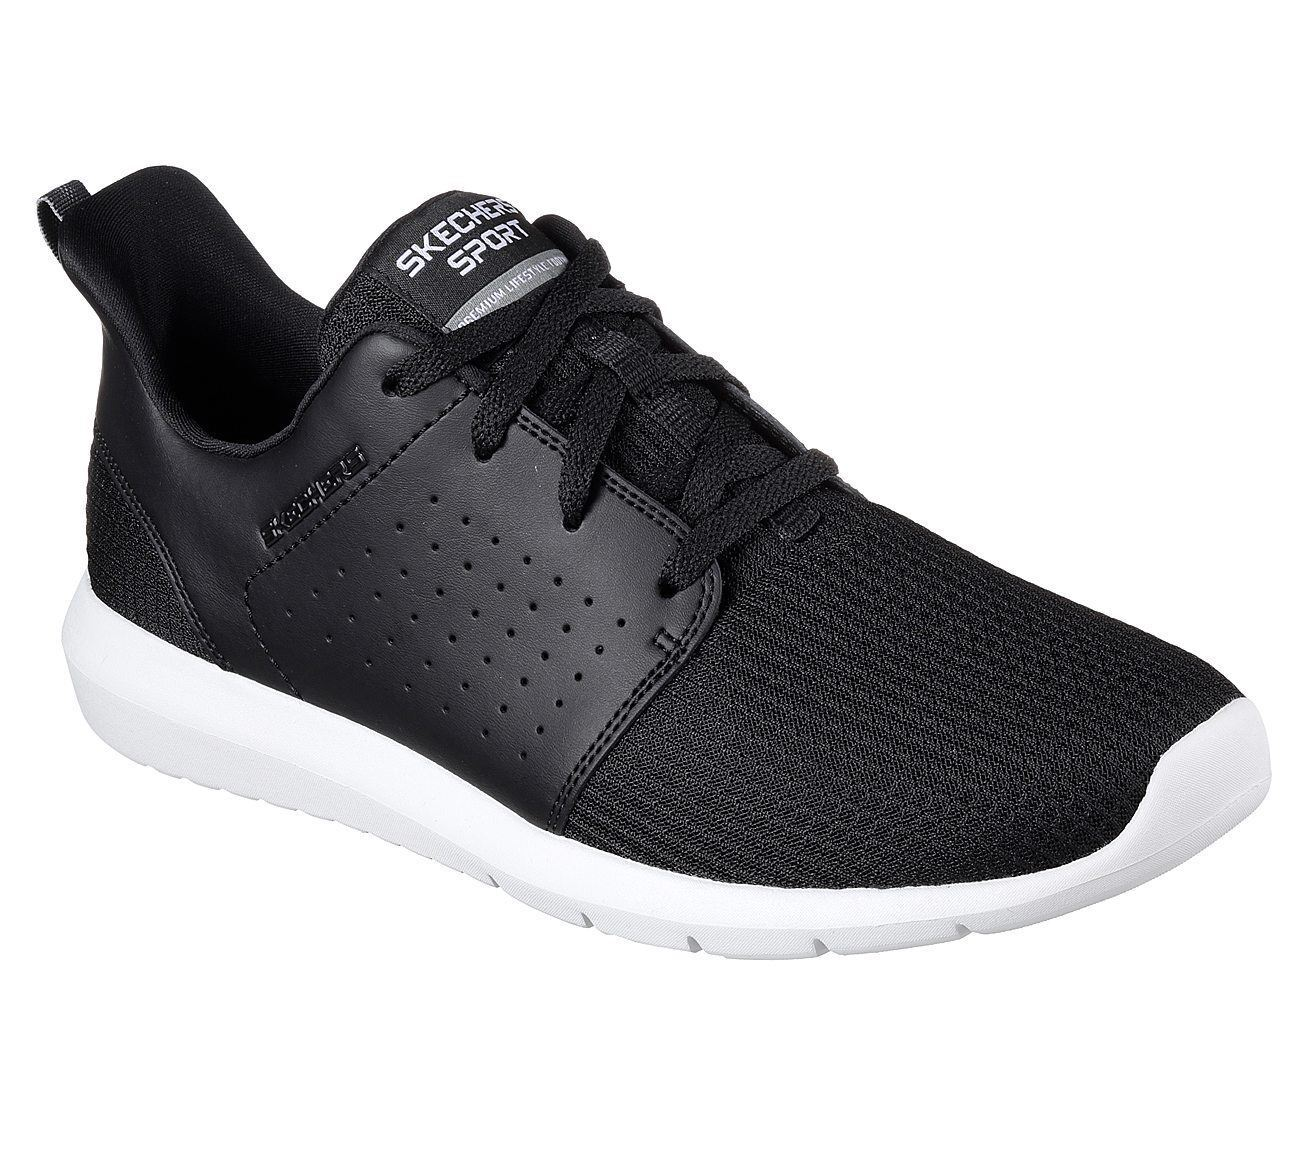 SKECHERS Men's Foreflex lace up walking and training sneaker in Black White